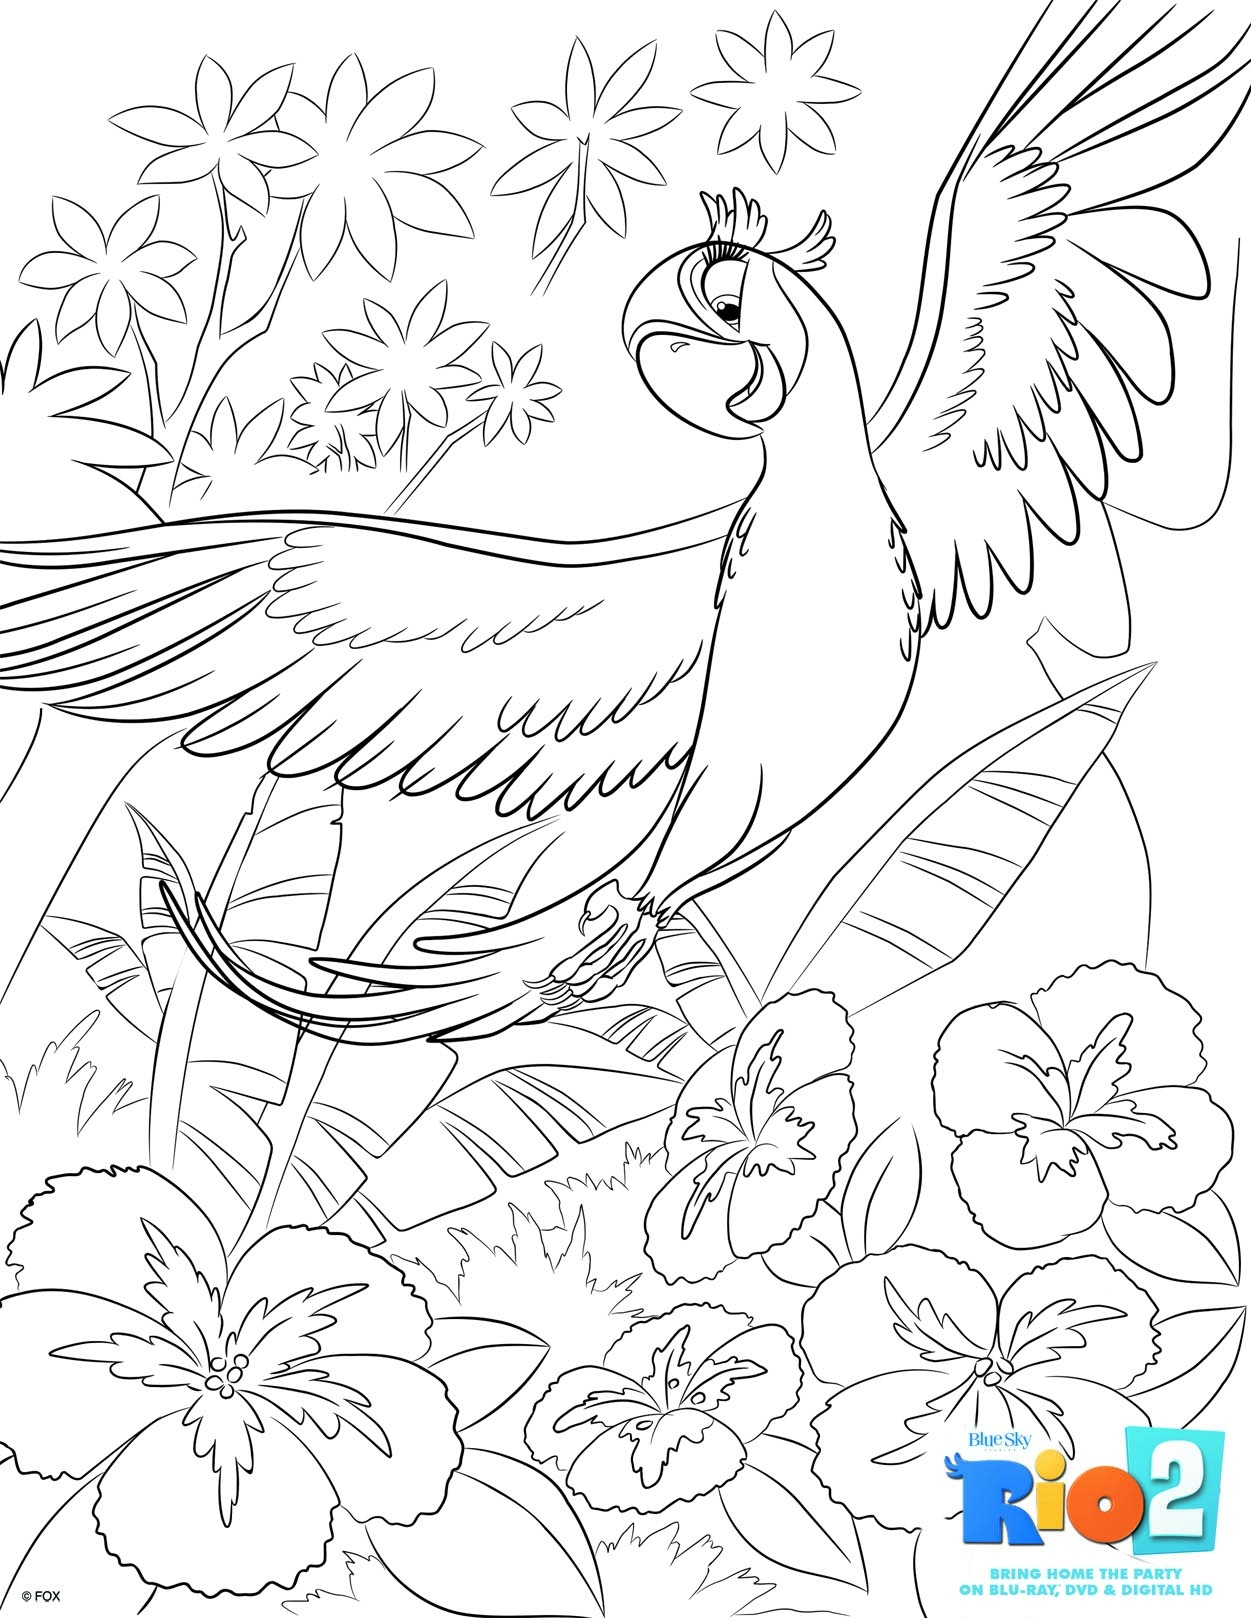 ant man coloring pages - free rio 2 coloring pages